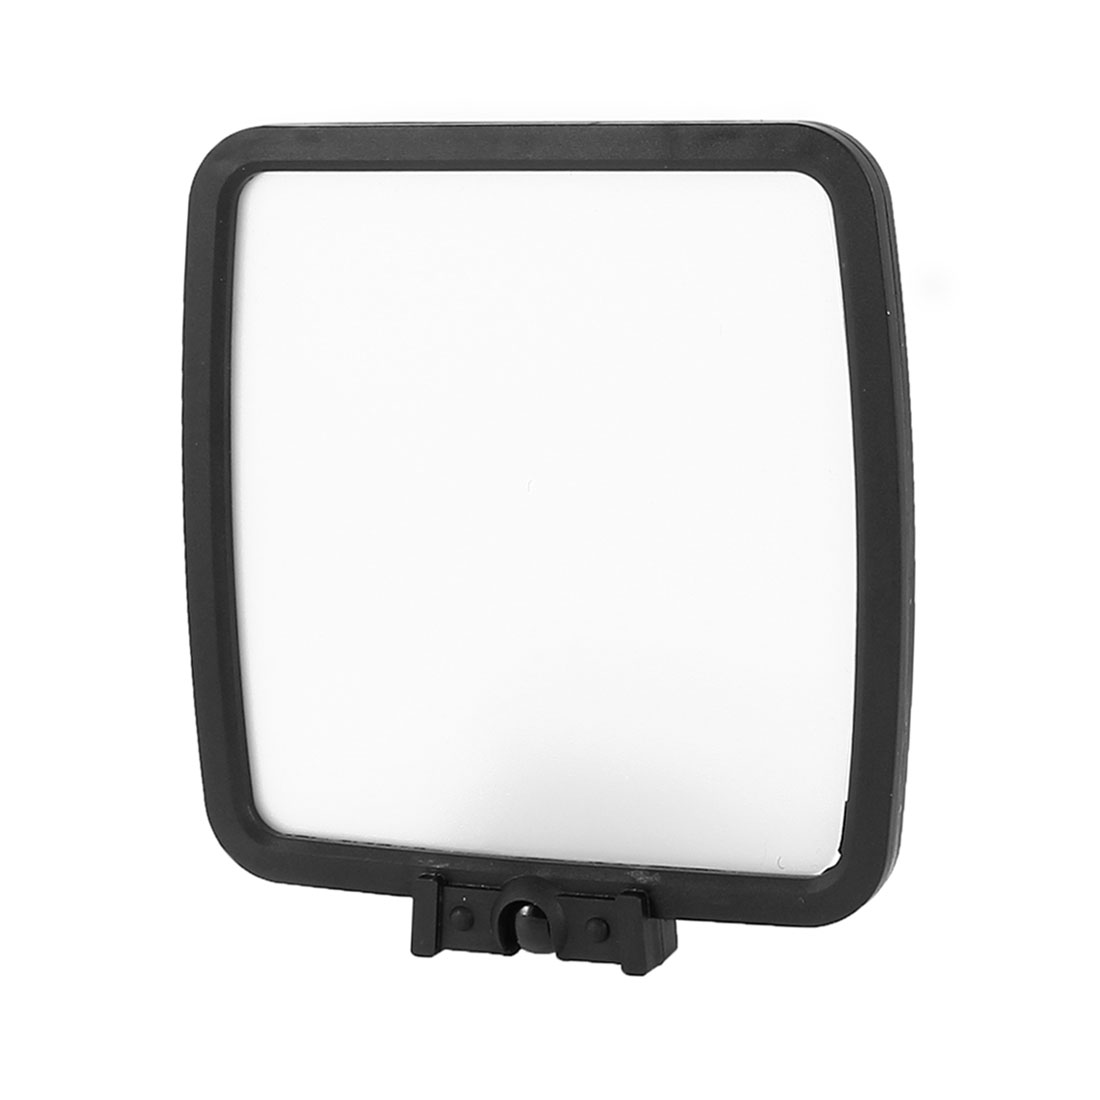 Square 4-in-1 Handheld Photography Studio Multi Photo Light Flash Reflector